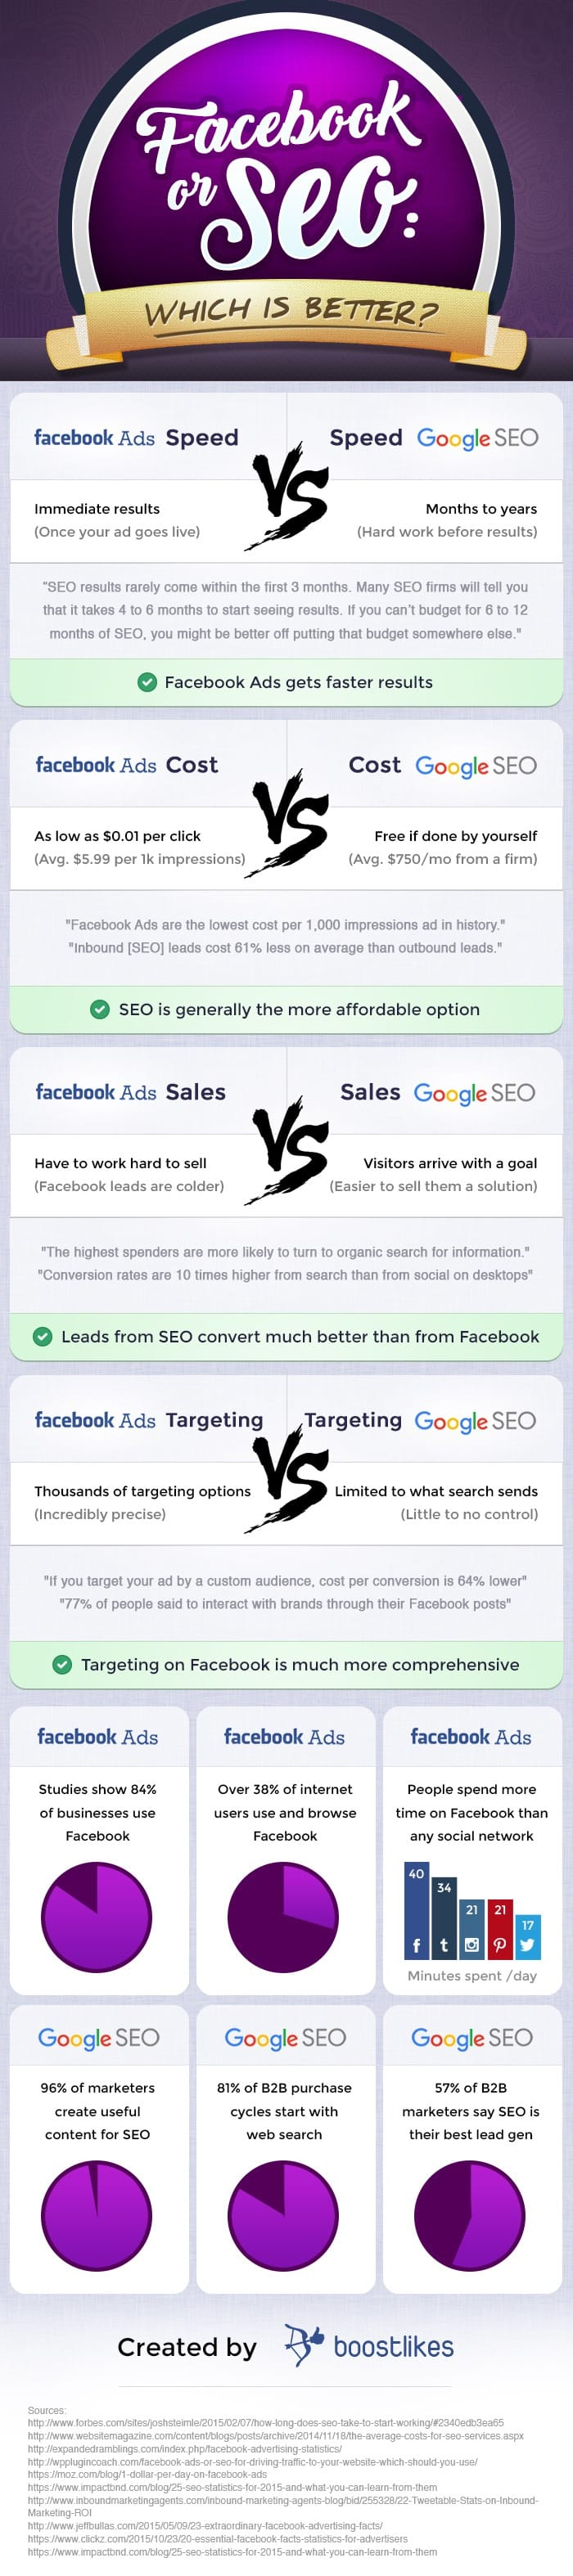 Facebook or SEO Which is Better